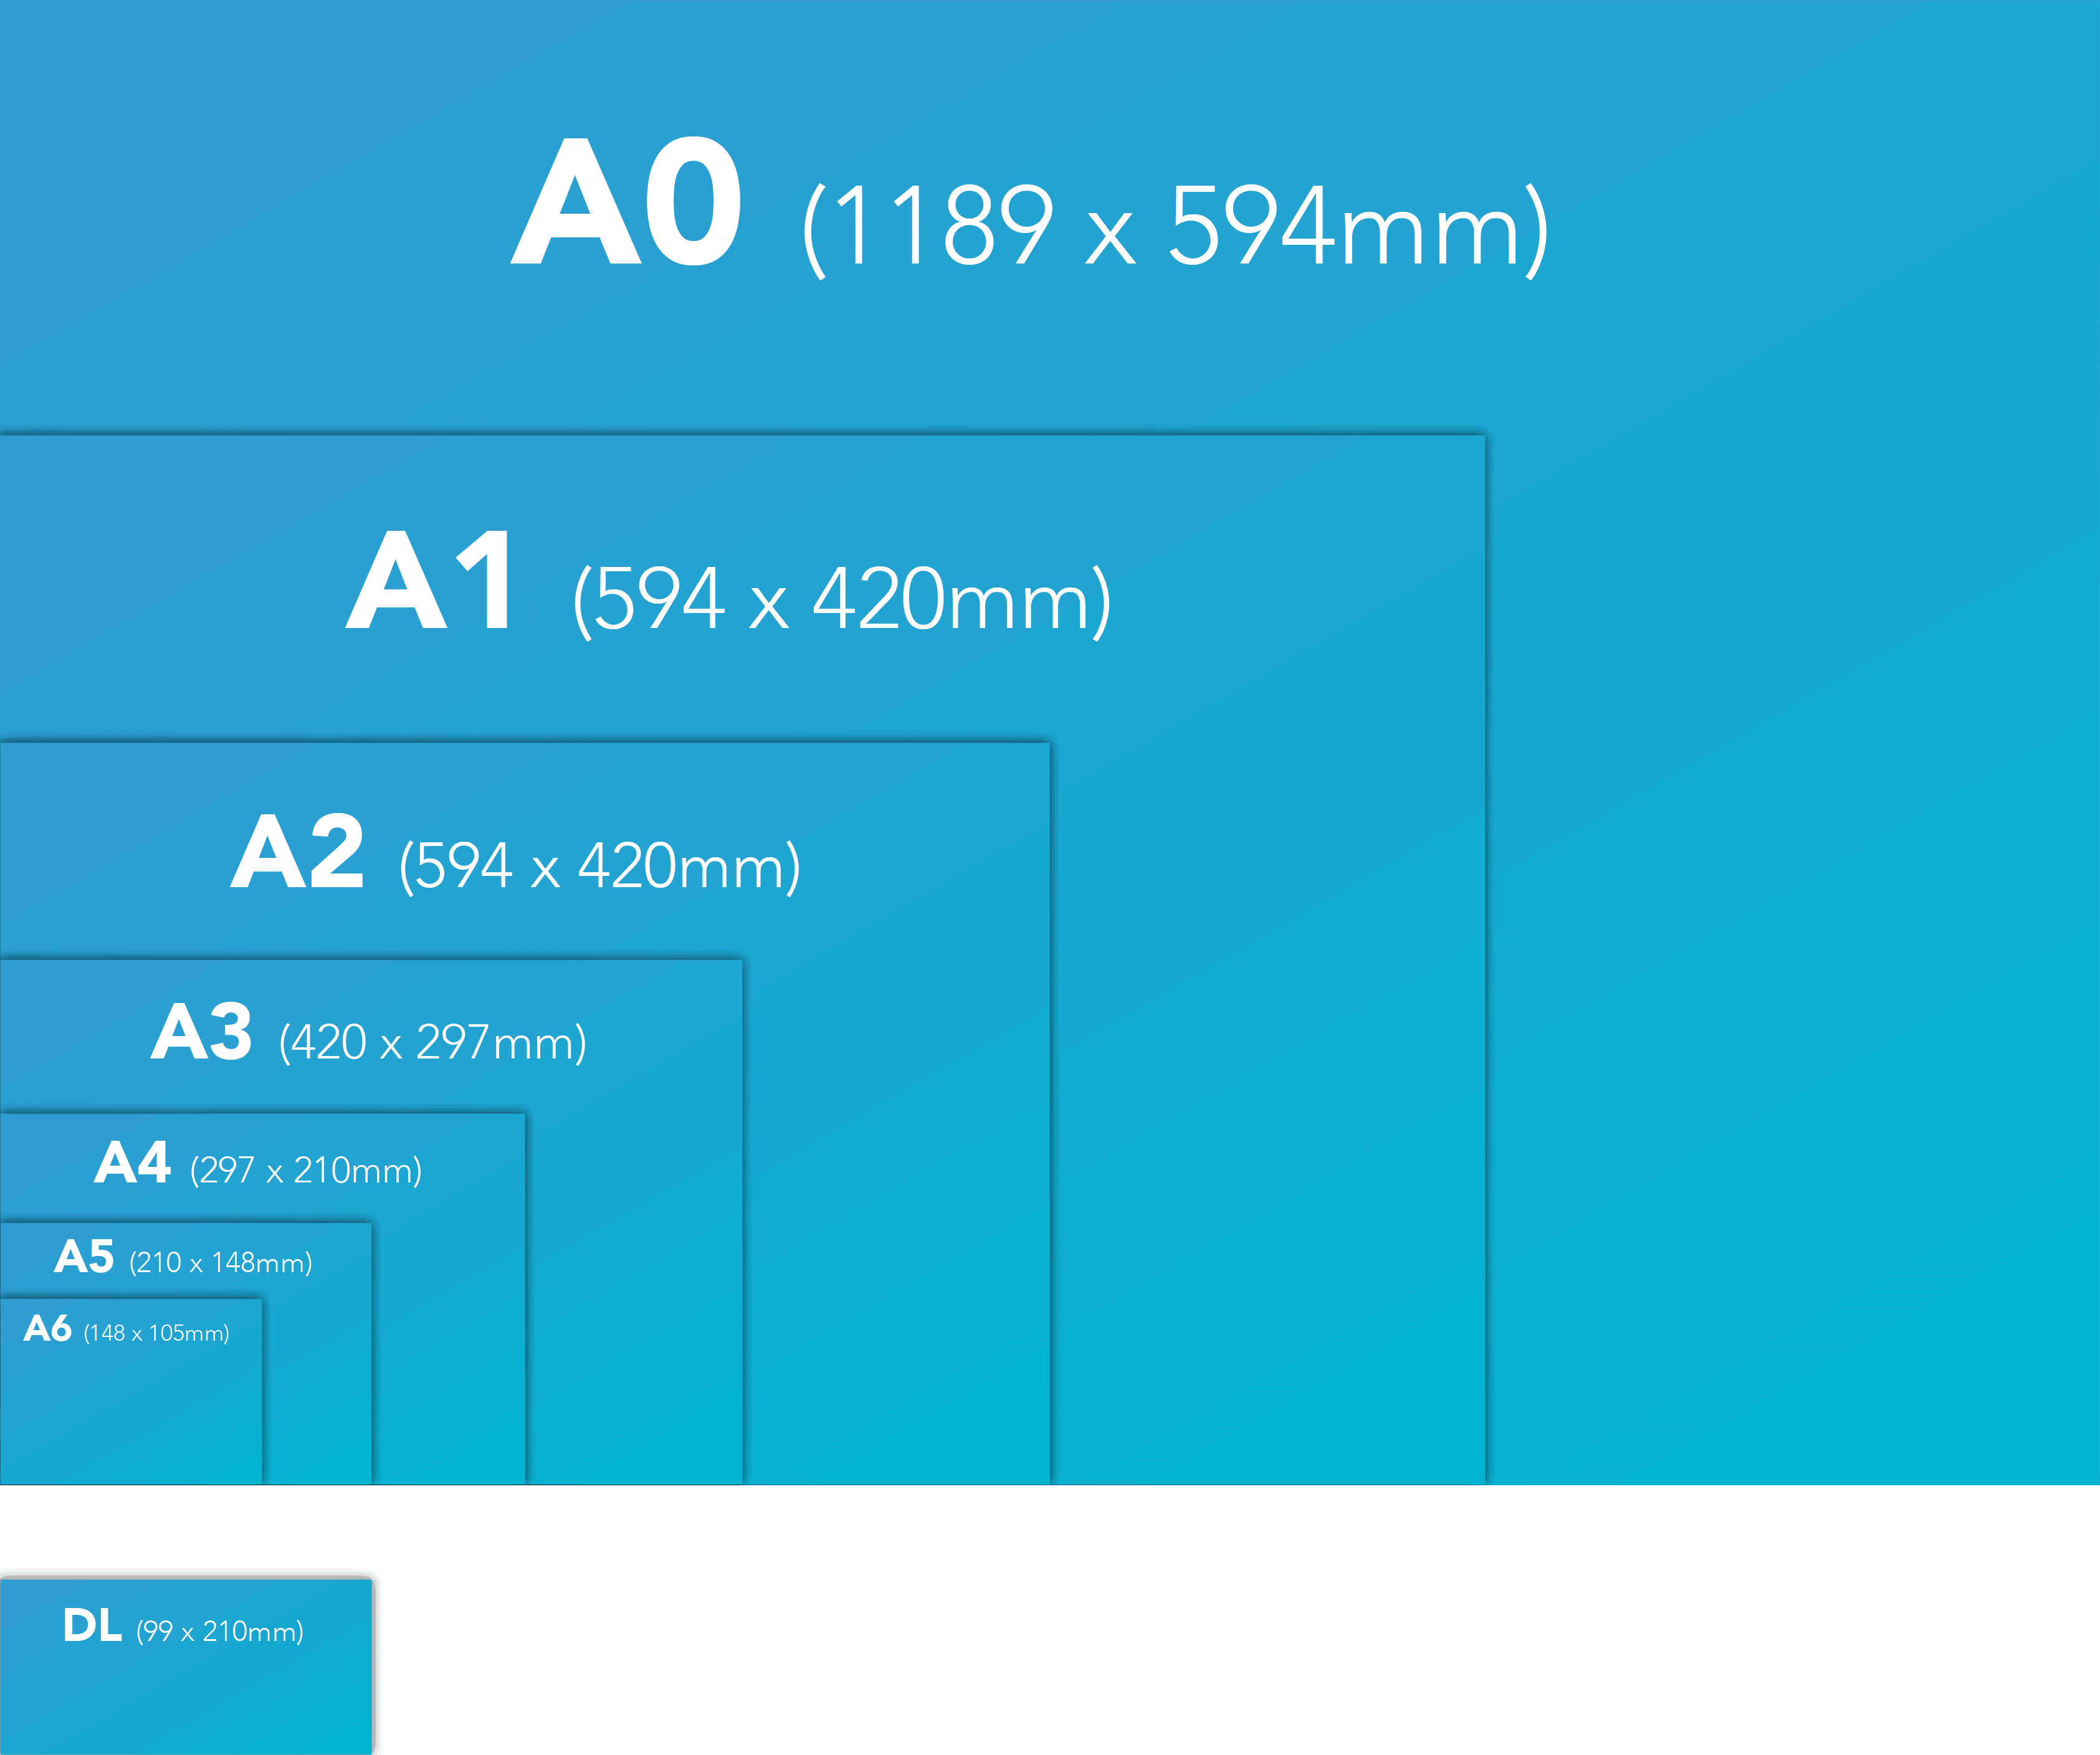 Ultimate Guide to Flyers - Sizing